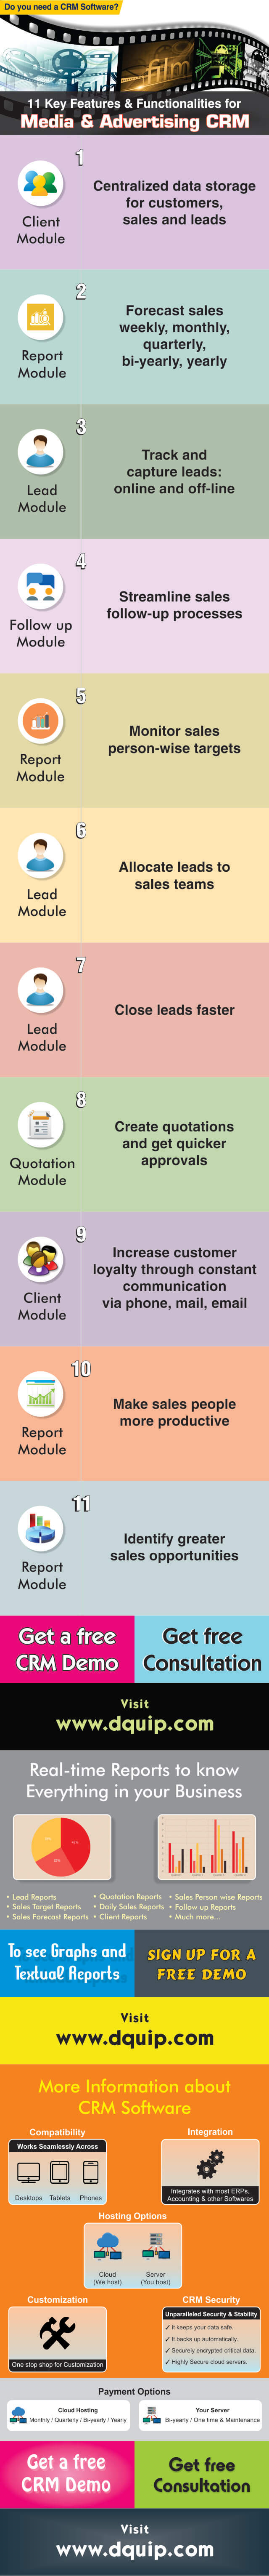 Infographic on Features and Functionalities of Media and Advertising CRM